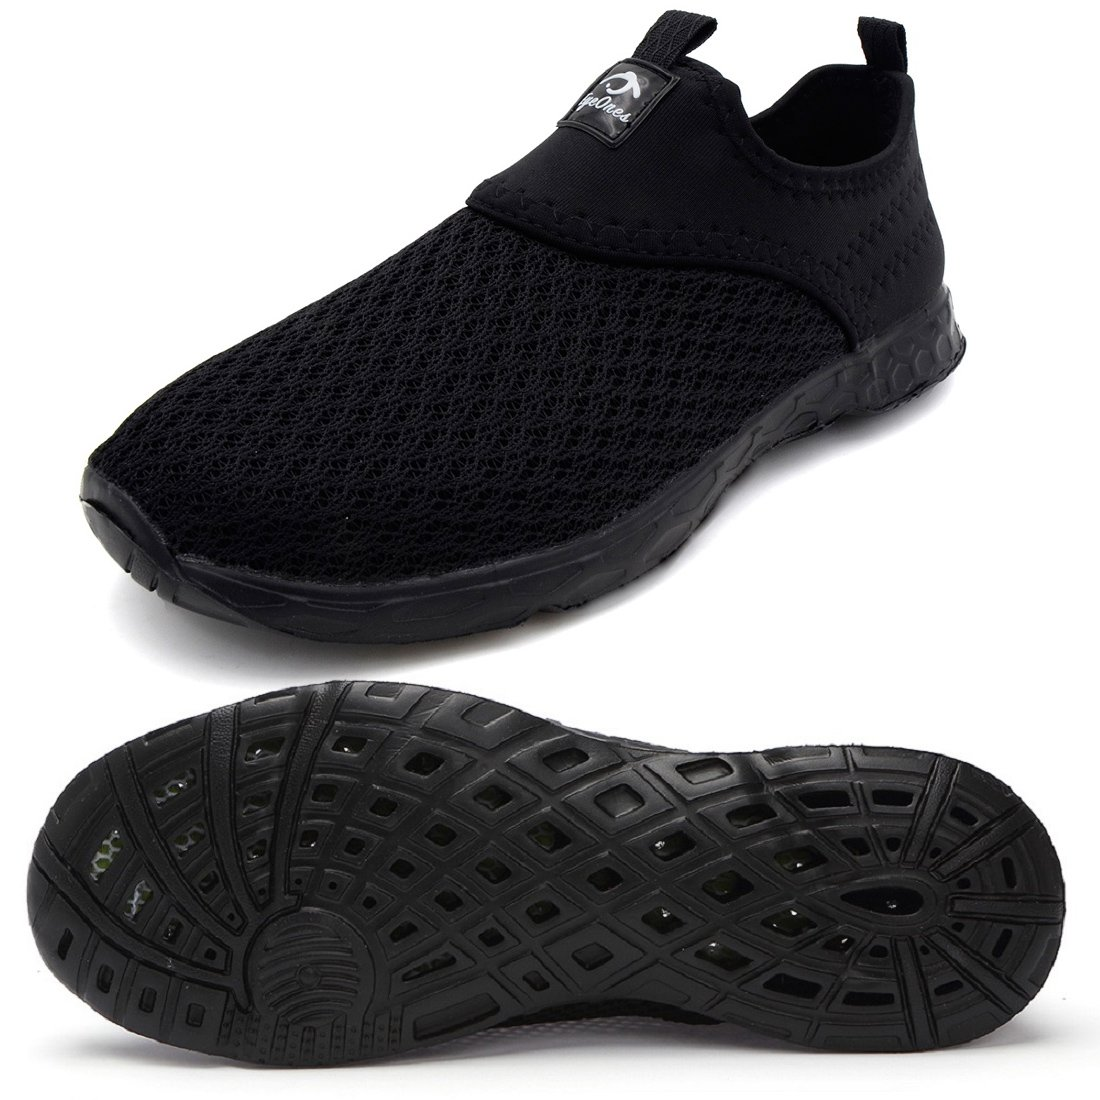 eyeones Men's Women's Lightweight Quick Drying Mesh Aqua Slip-on Water Shoes Perfect Match for Waterproof Phone Case